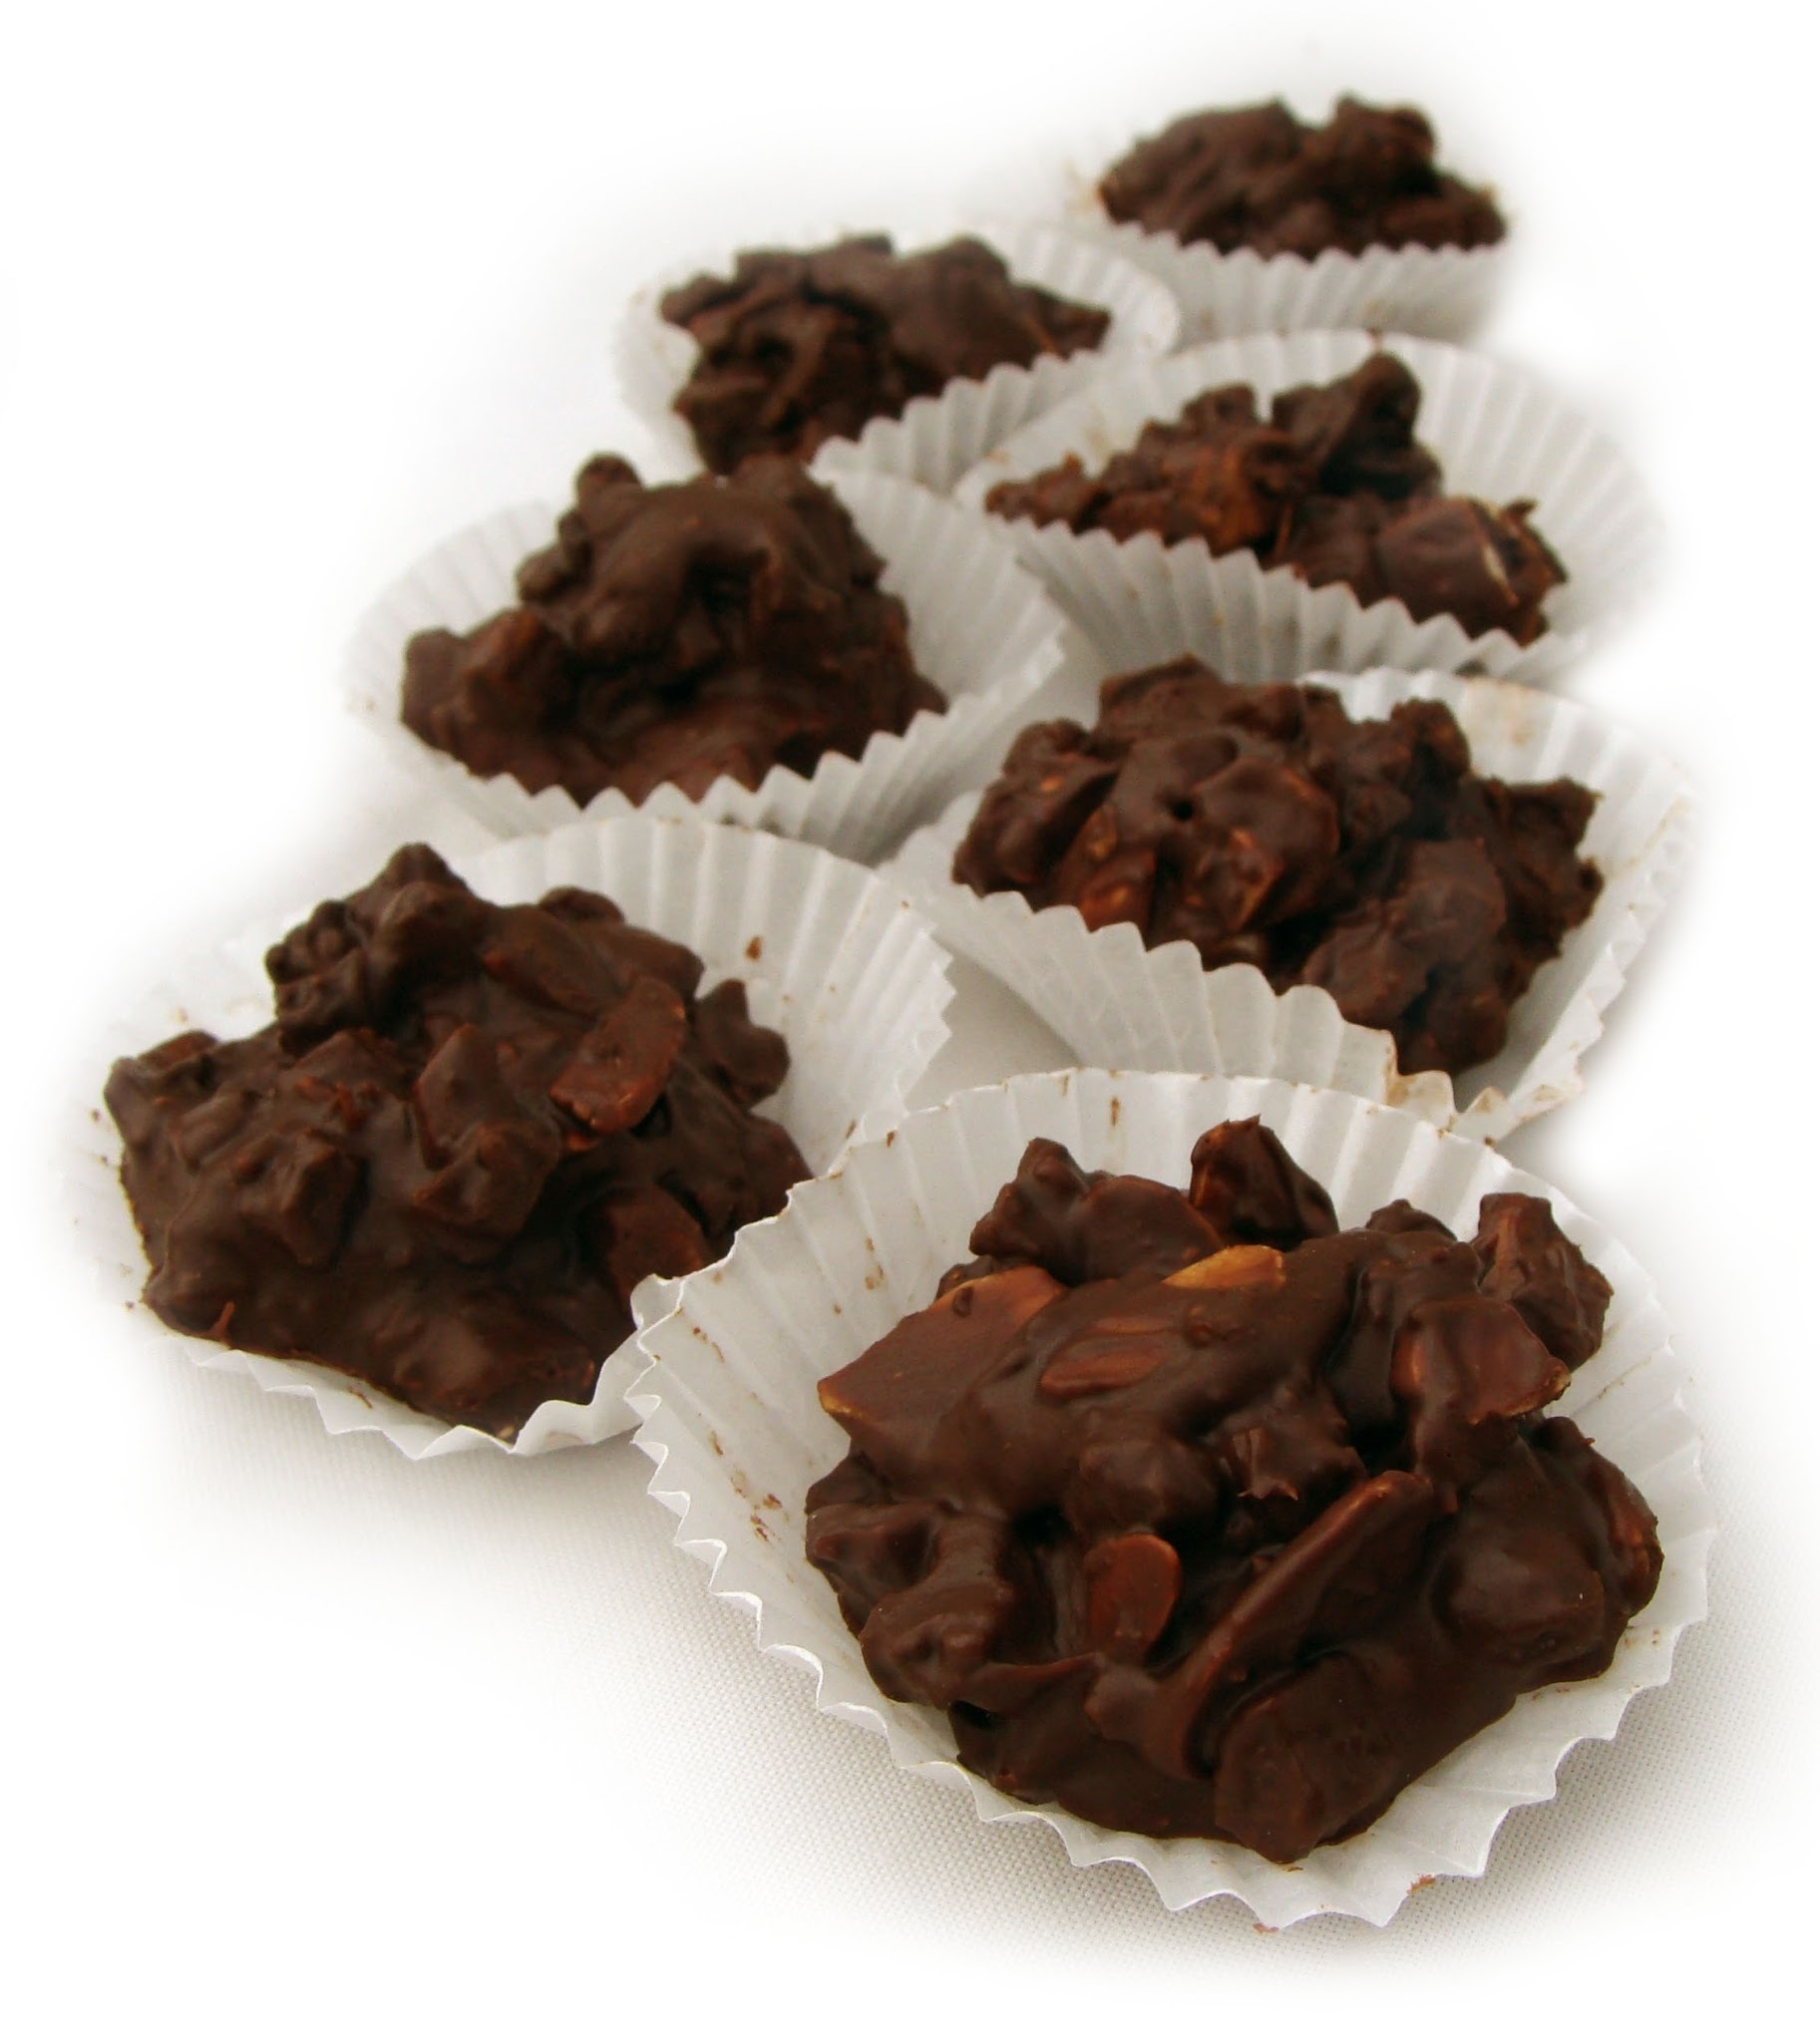 Like chocolate? Then you will LOVE these!